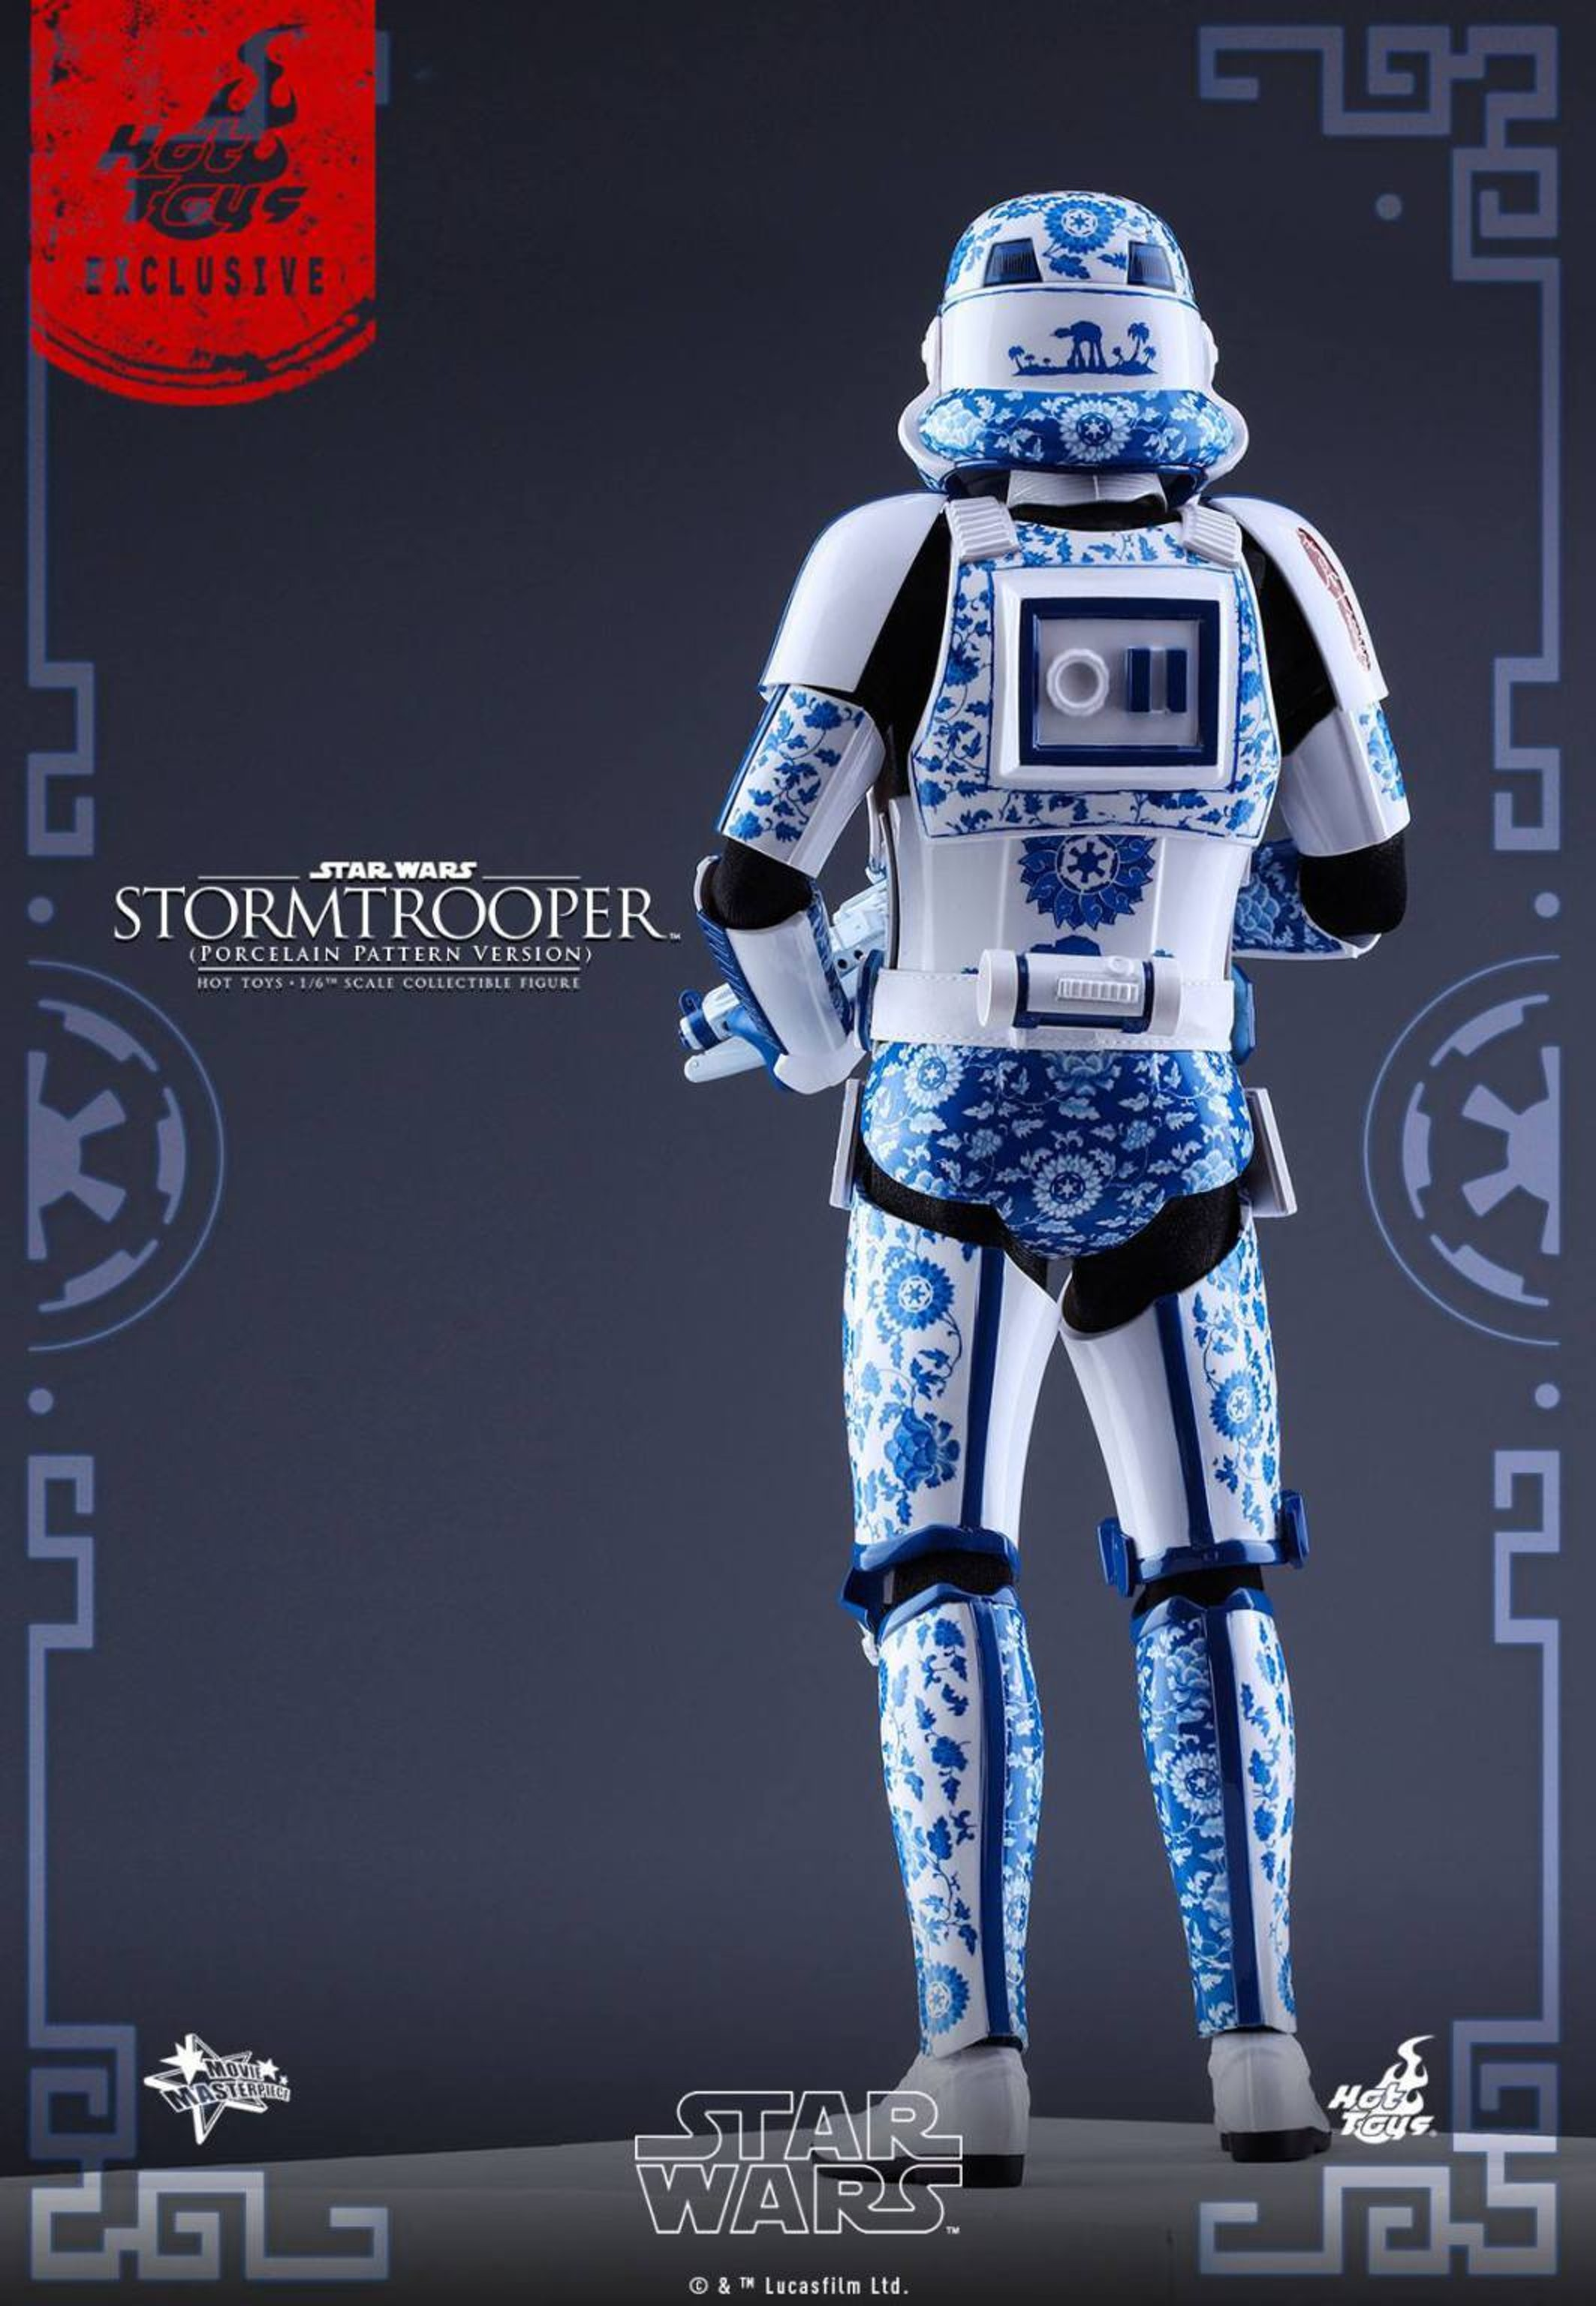 This 1/6 scale action figure is a little short to be a stormtrooper.